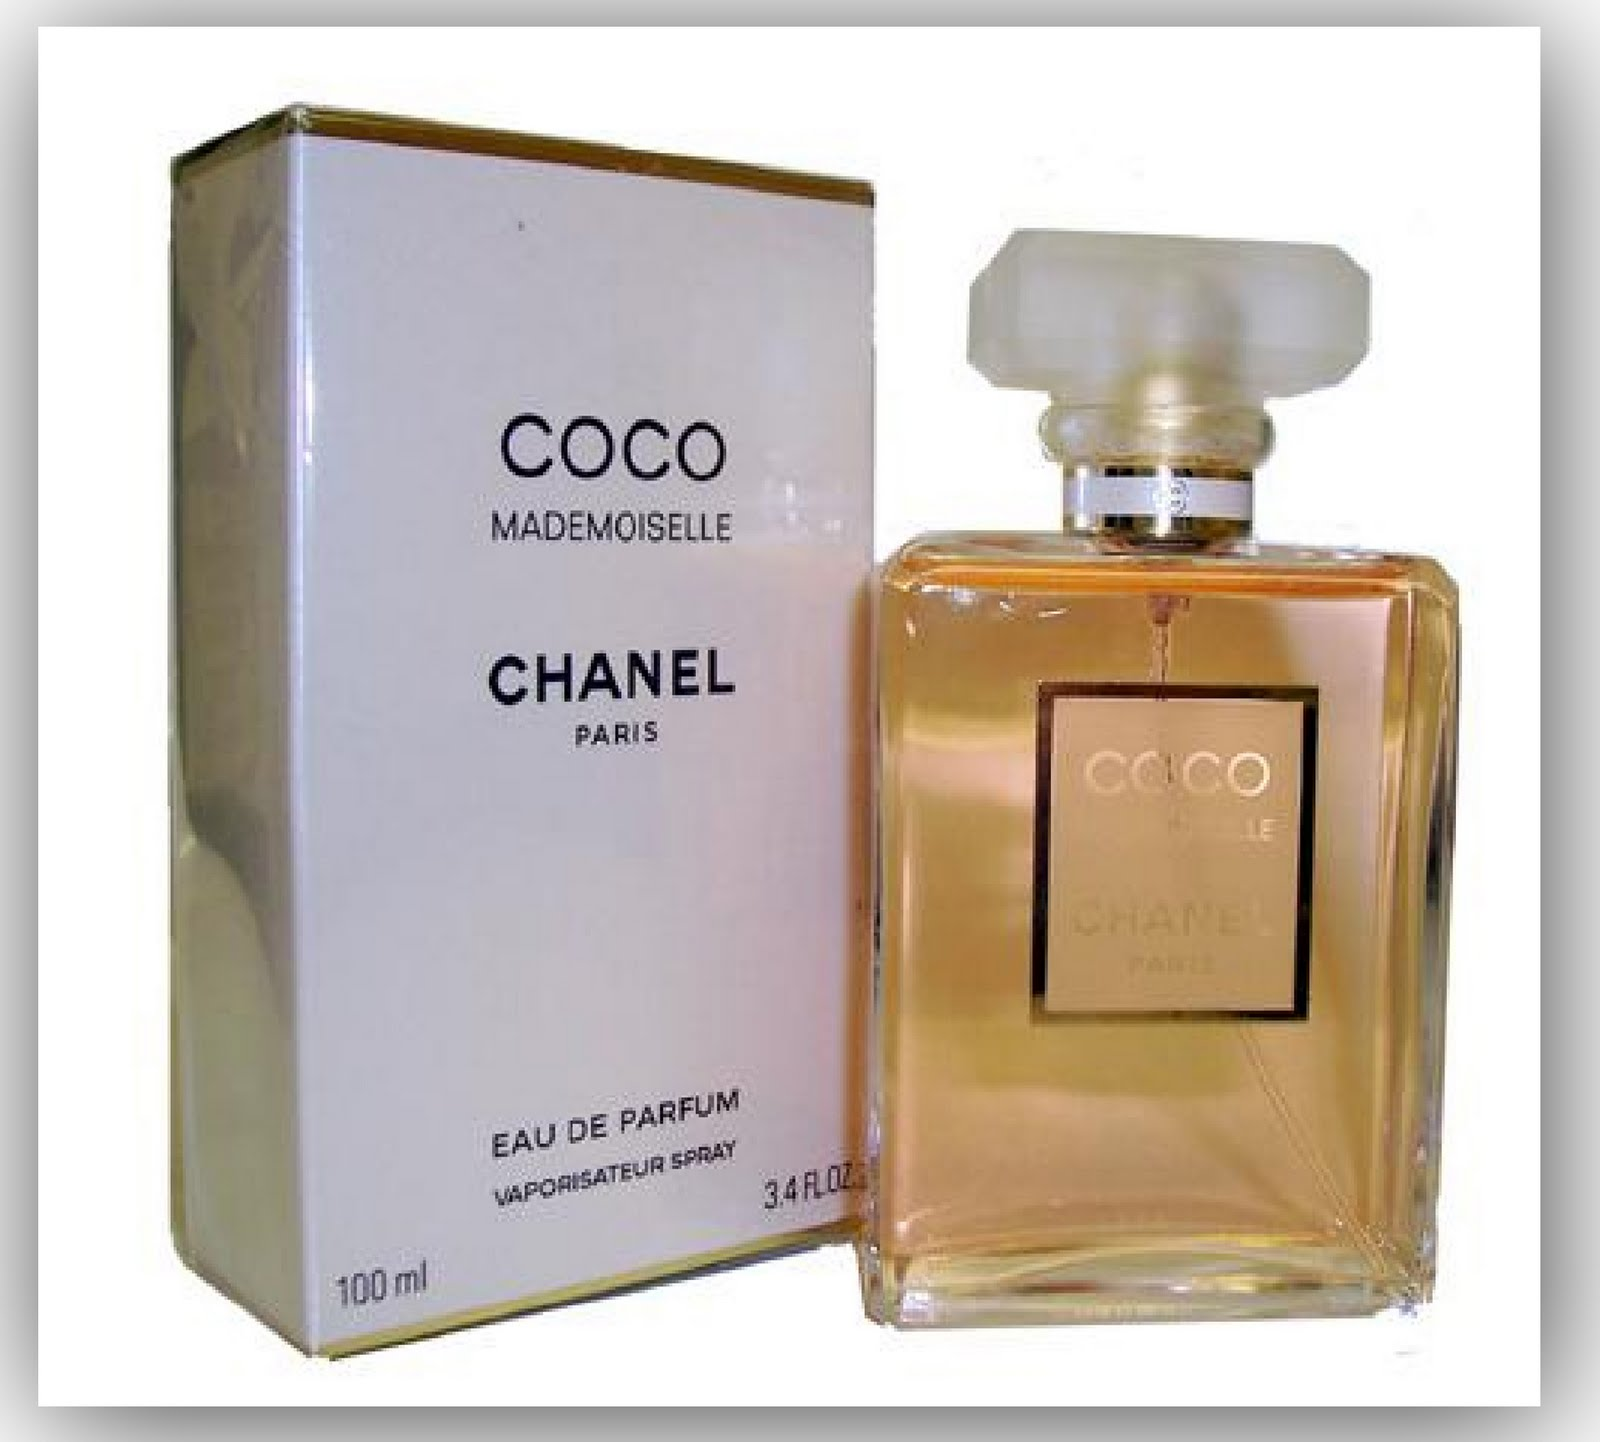 cosmetics perfume chanel coco mademoiselle in spain. Black Bedroom Furniture Sets. Home Design Ideas